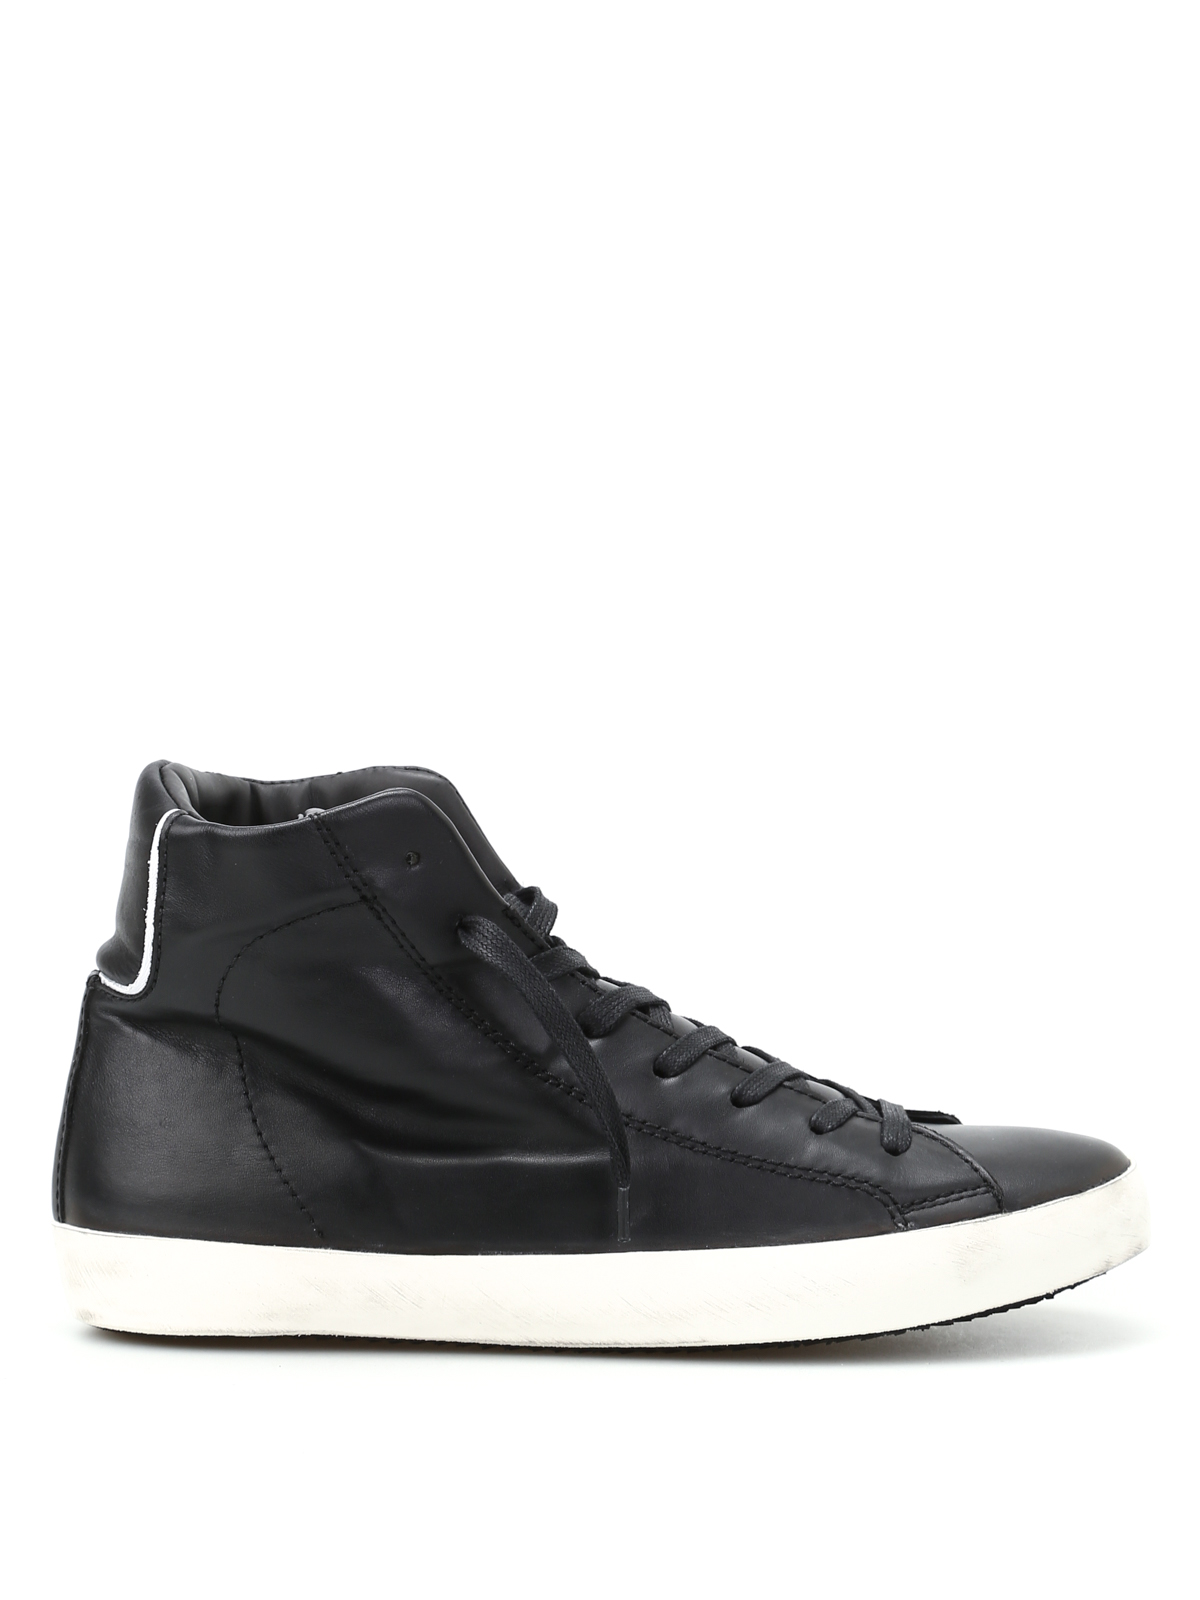 paris black high top sneakers by philippe model trainers ikrix. Black Bedroom Furniture Sets. Home Design Ideas